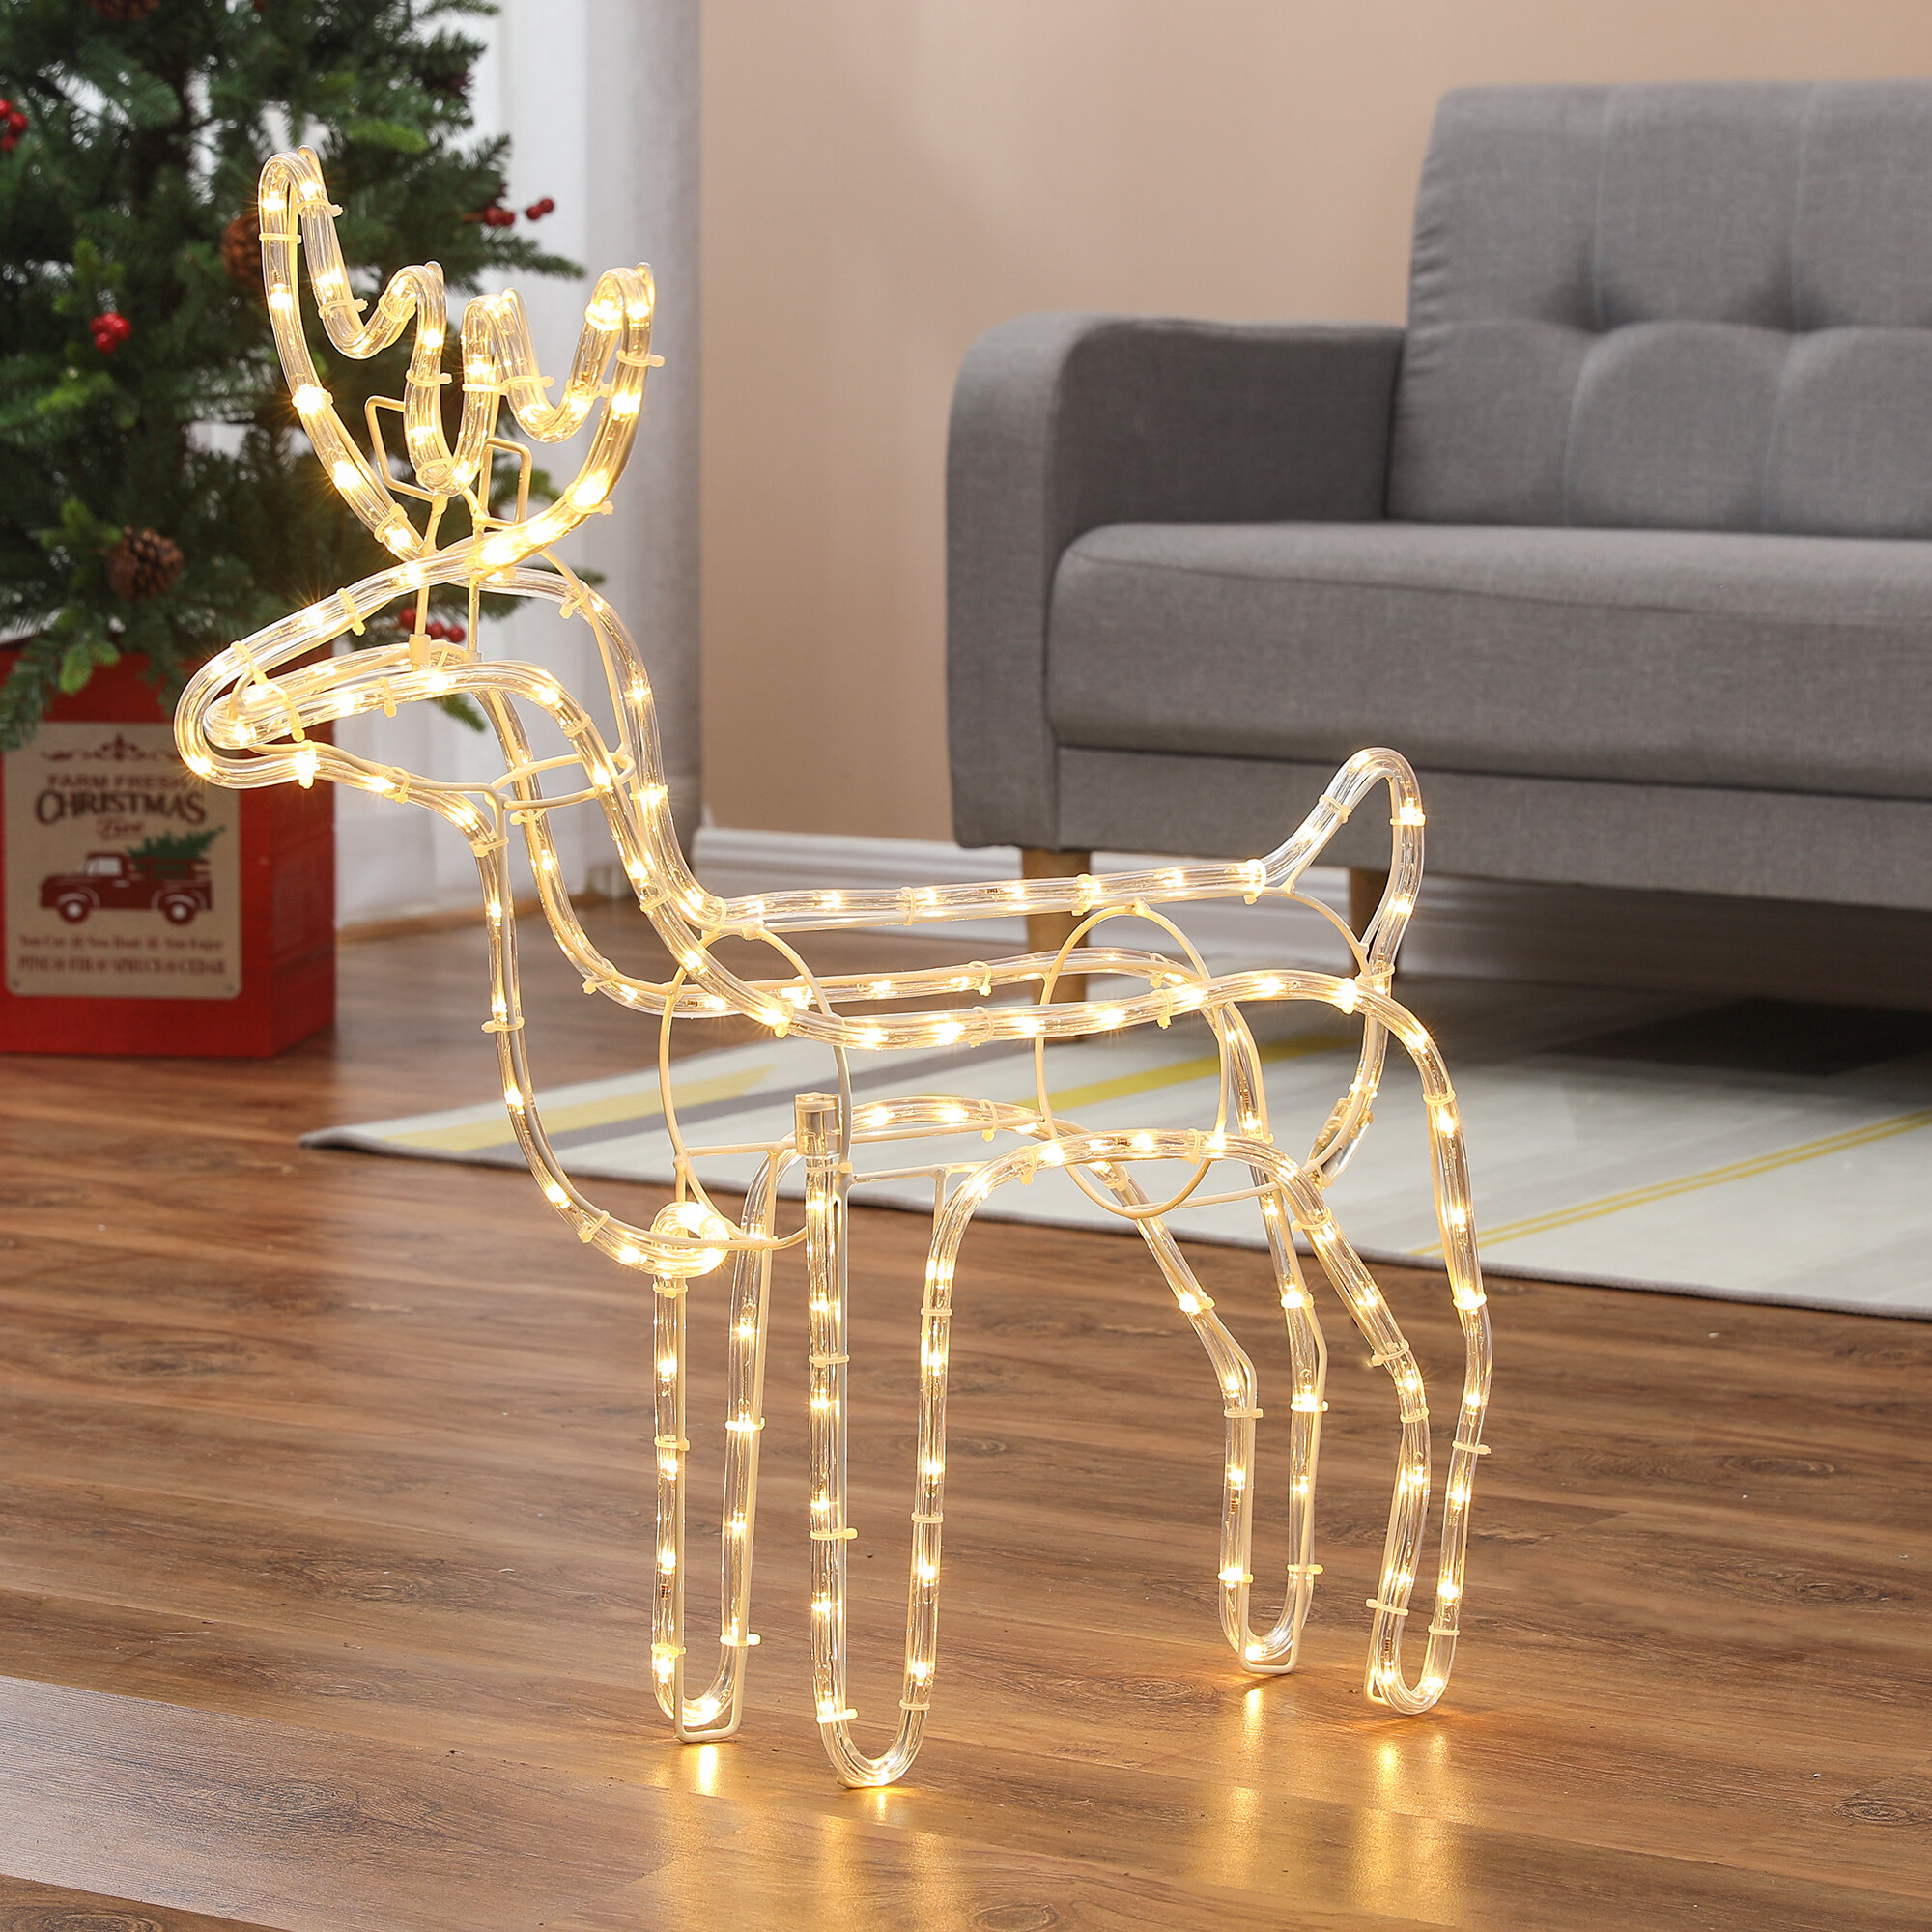 Stylish Christmas Hanging Silhouette Light For Indoor Outdoor Use Reindeer